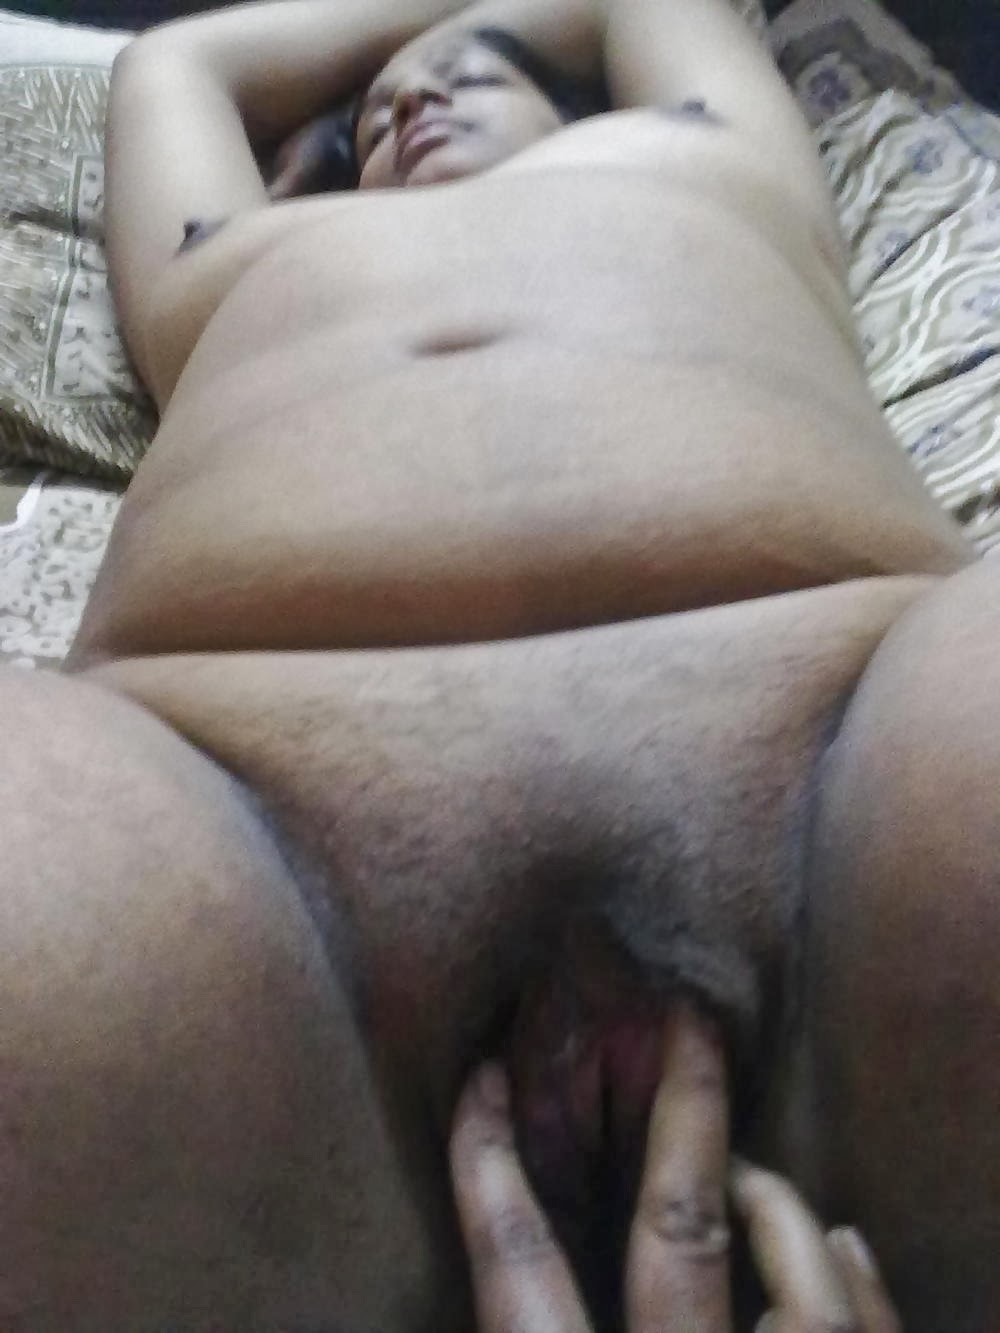 45 year old nude aunty showing shaved nude pussy nangi photo